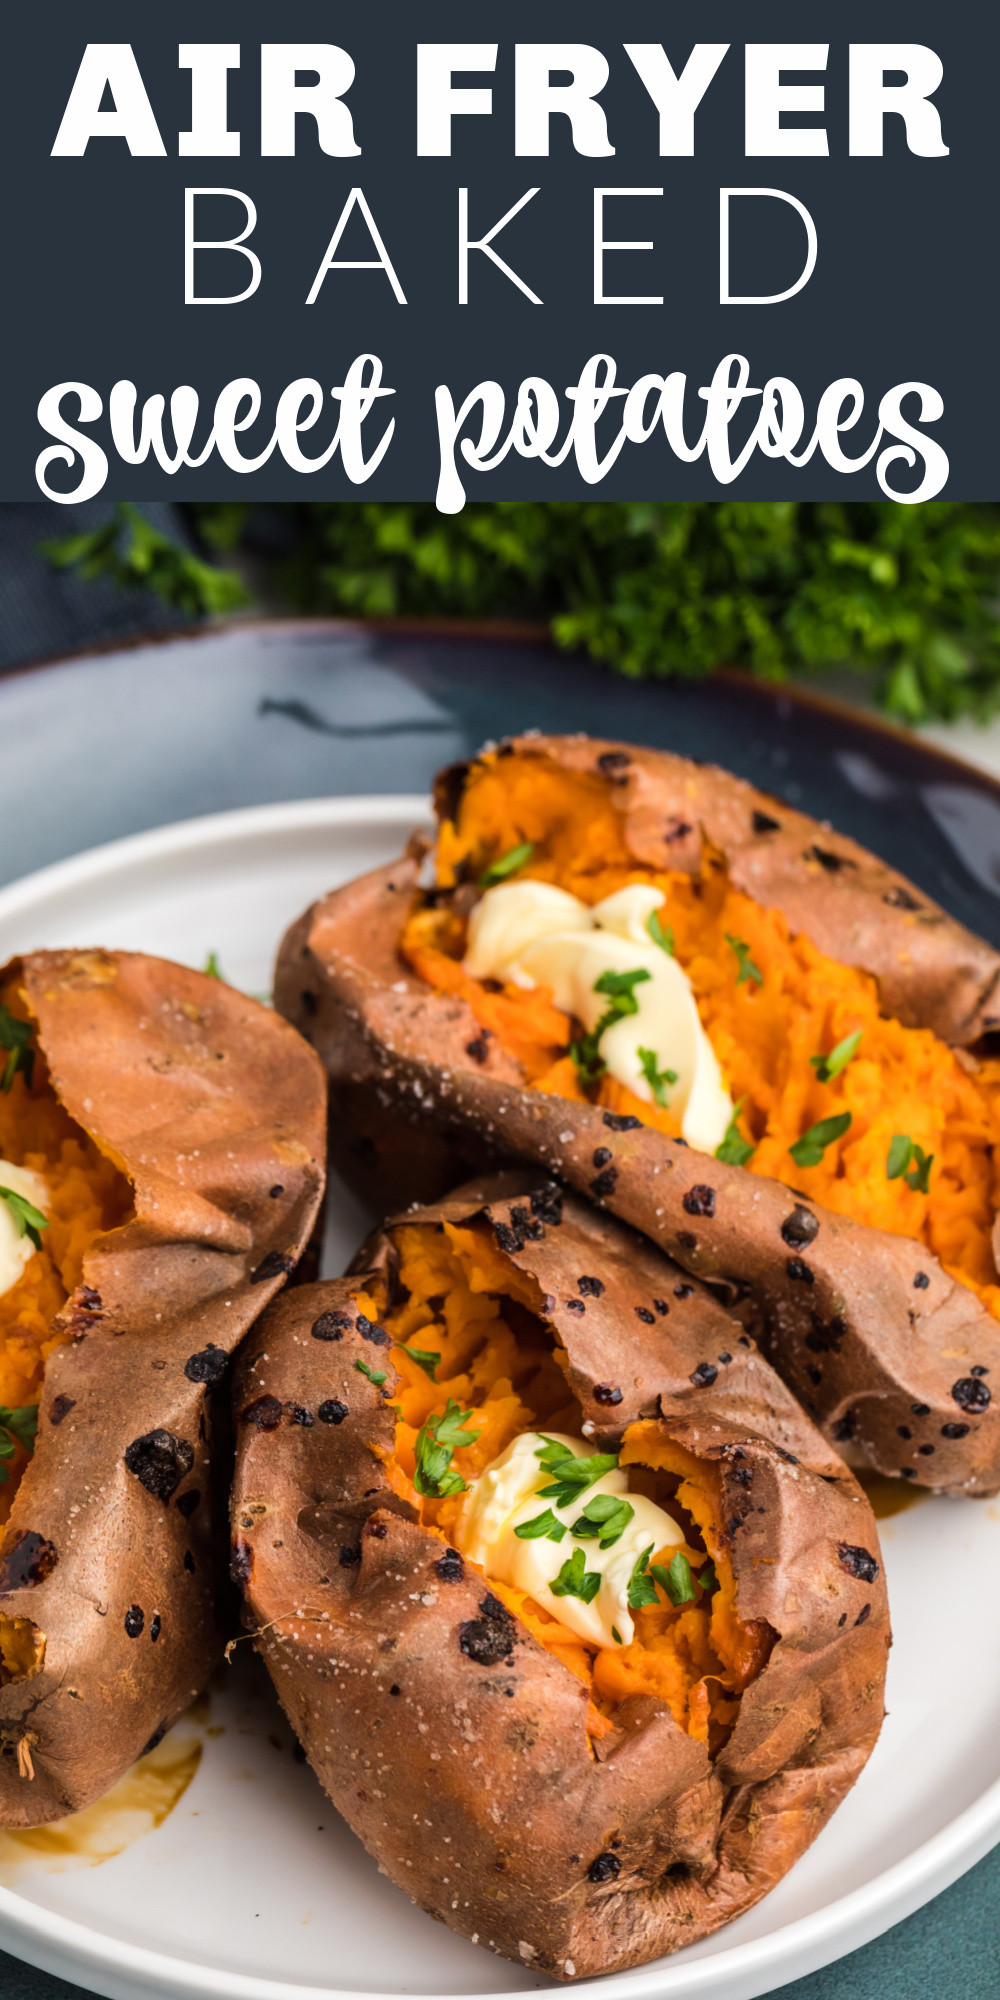 Air Fryer Baked Sweet Potatoes are my new favorite way to make sweet potatoes. You'll get deliciously crispy skin and perfect fluffy potato on the inside. Only 3 ingredients for the best sweet potatoes you'll ever taste.